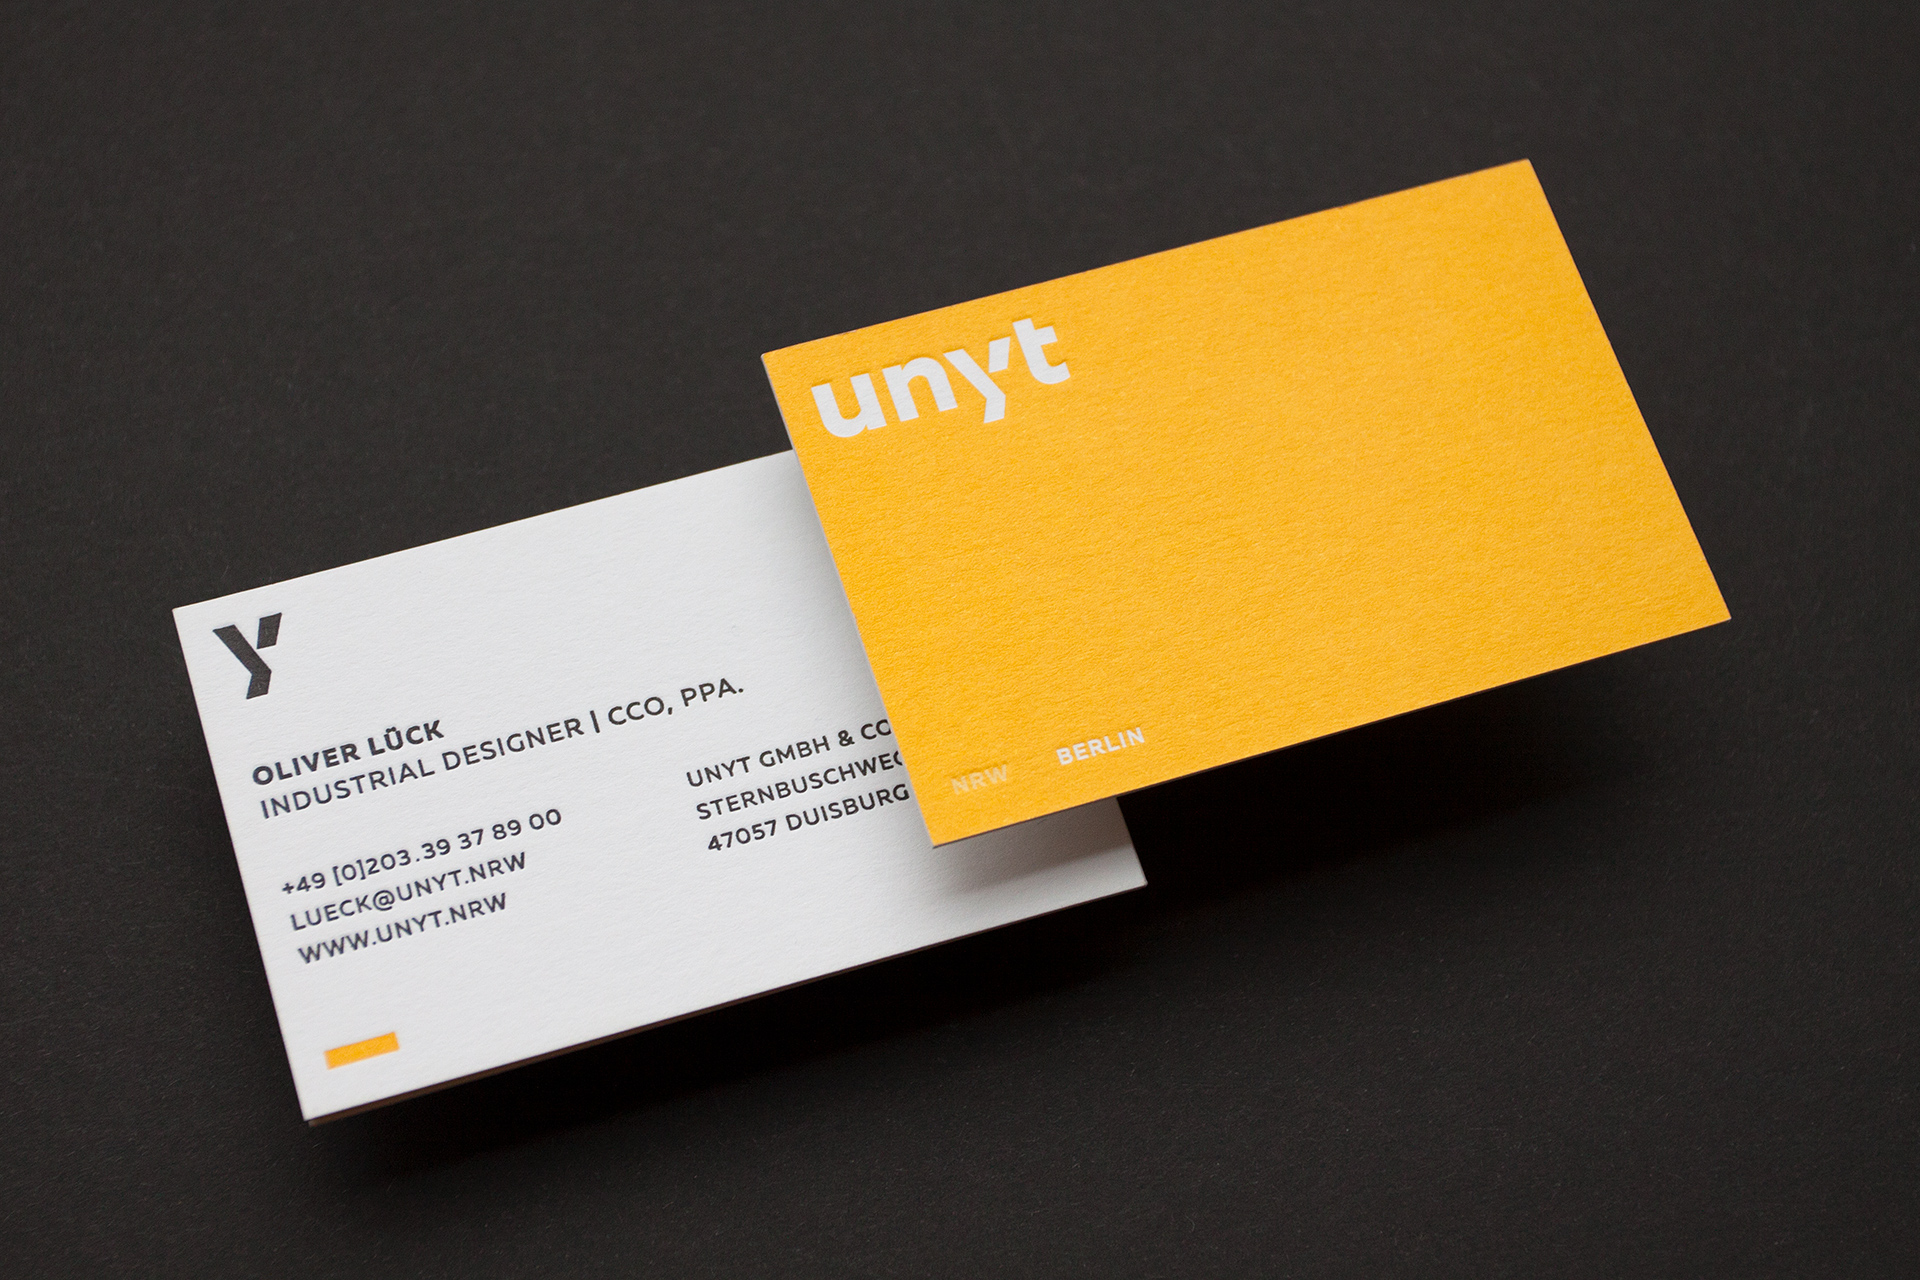 unyt-businesscard-2821